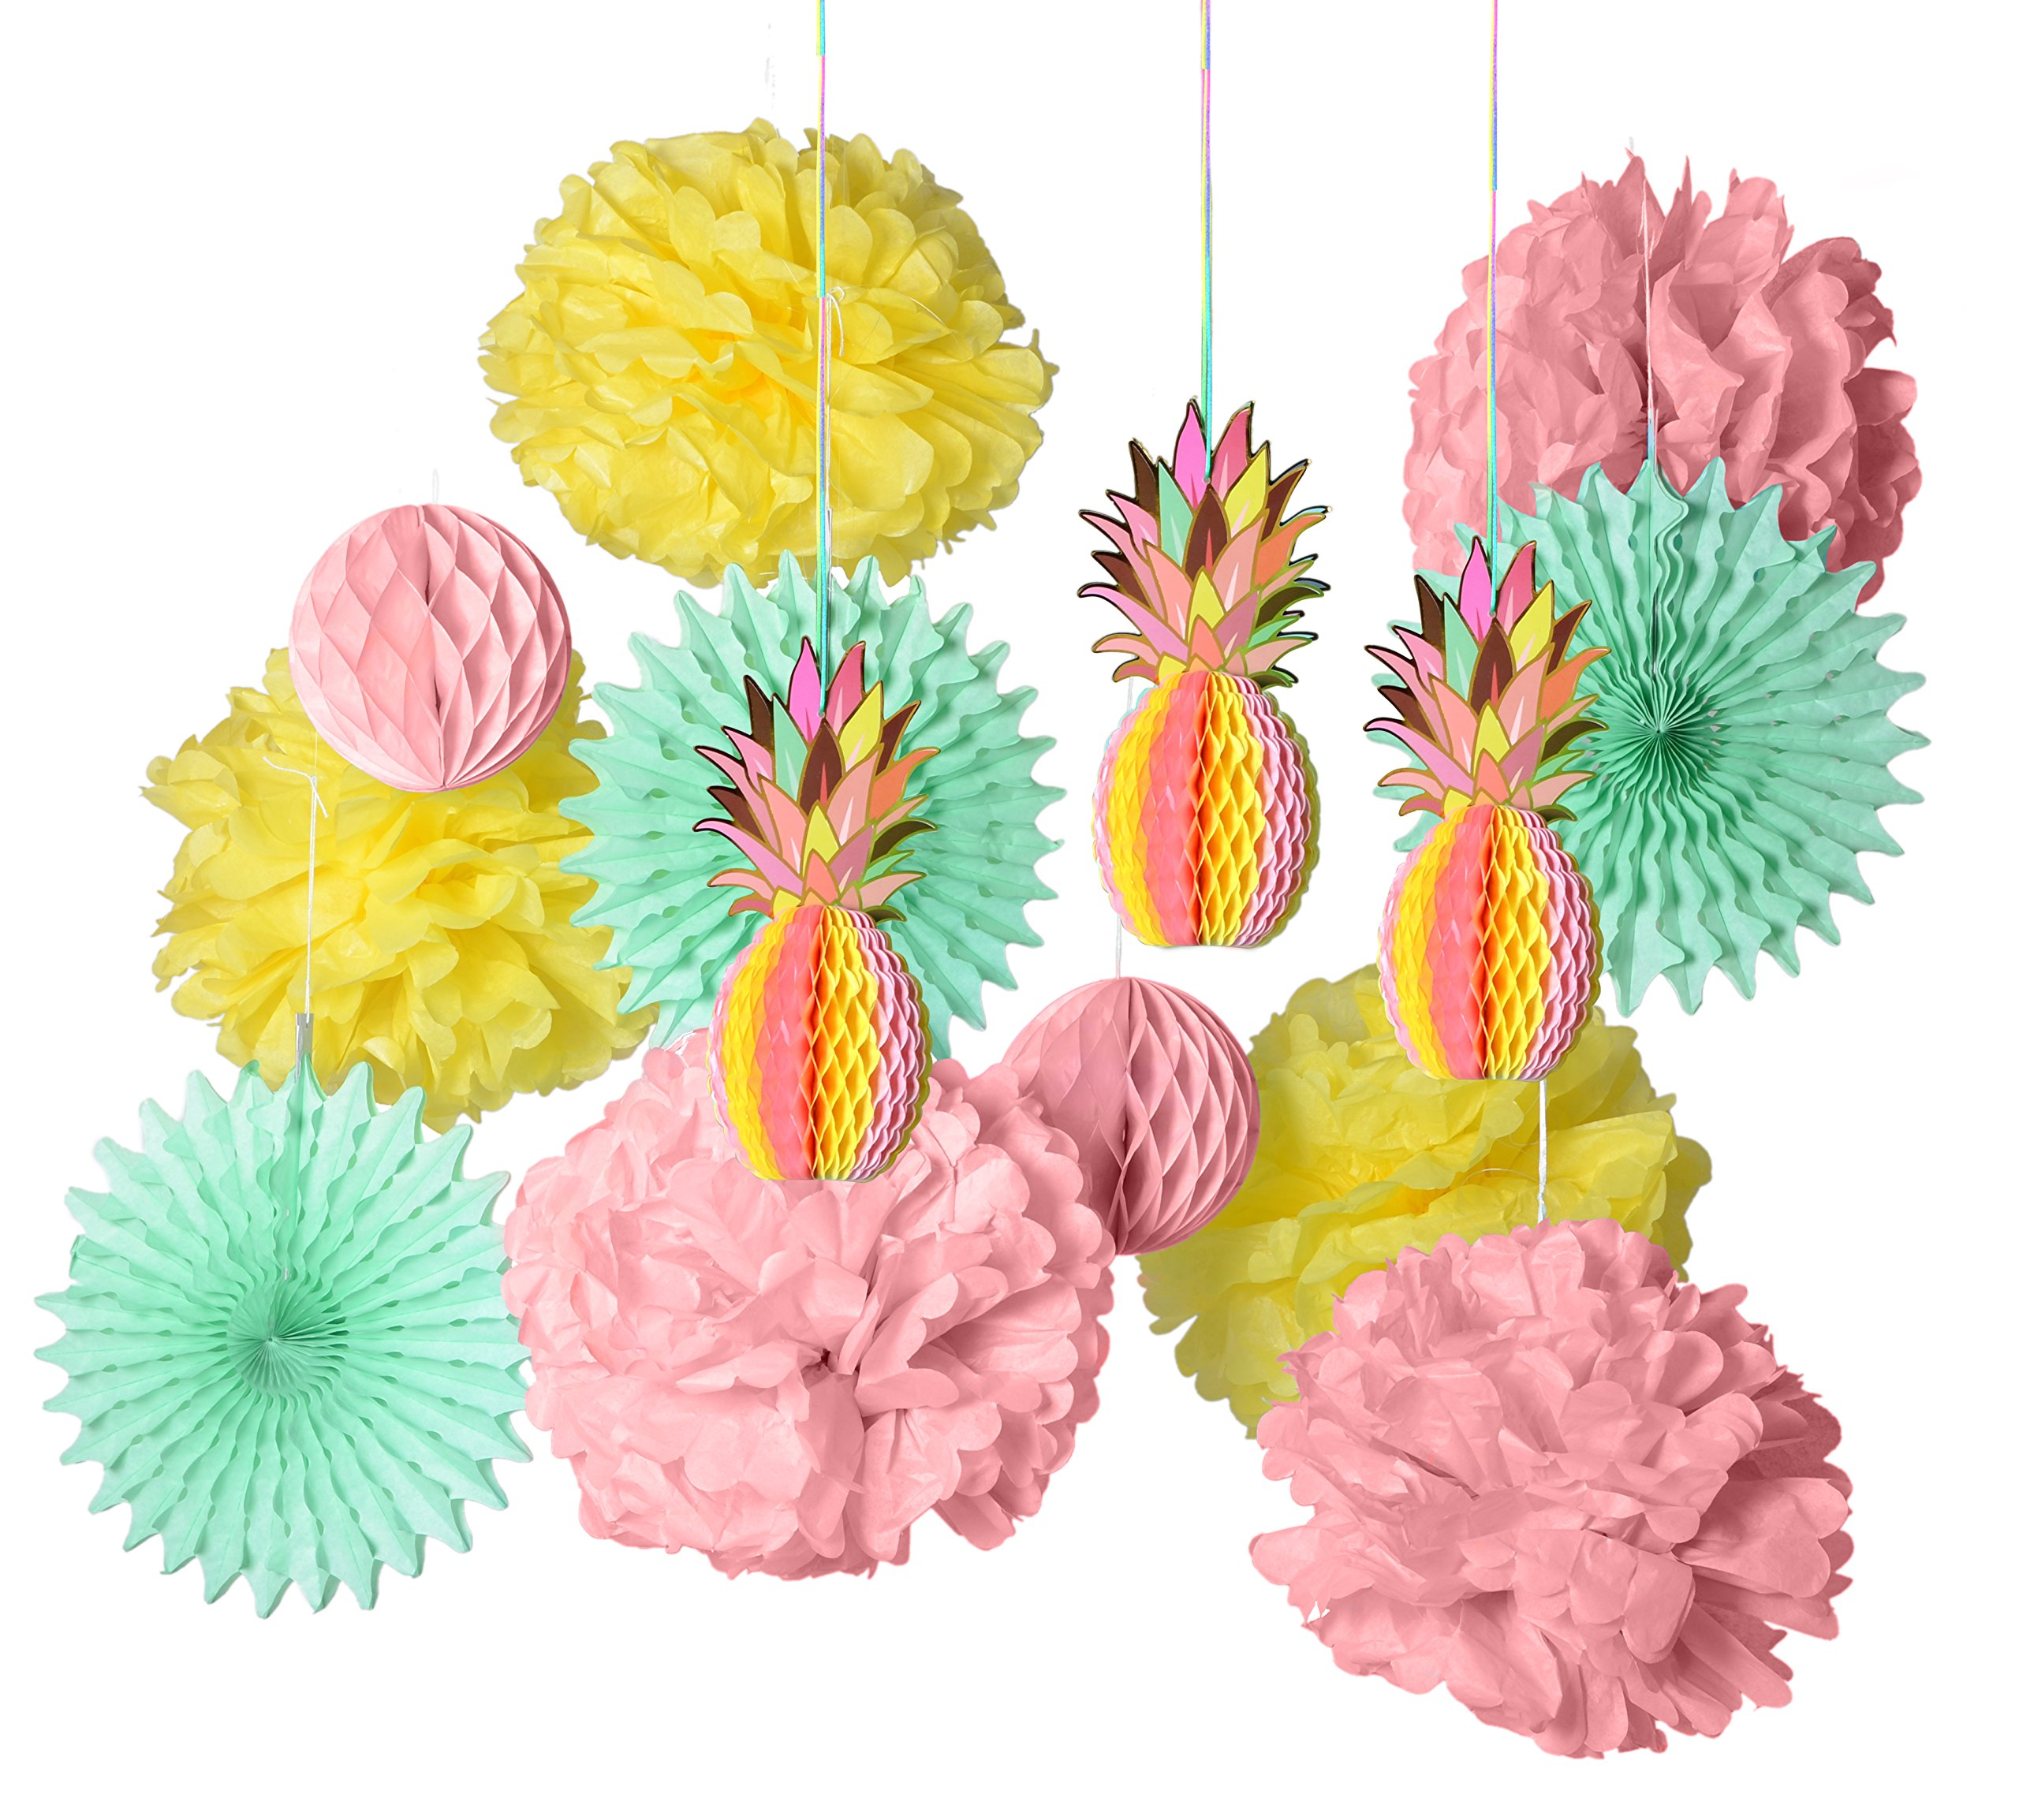 PAPER JAZZ multicolored paper honeycomb pineapple table centerpiece hanging decoration decor for summer Hawaiian laua tiki beach tropical fruit party (PINK SET) by paper jazz